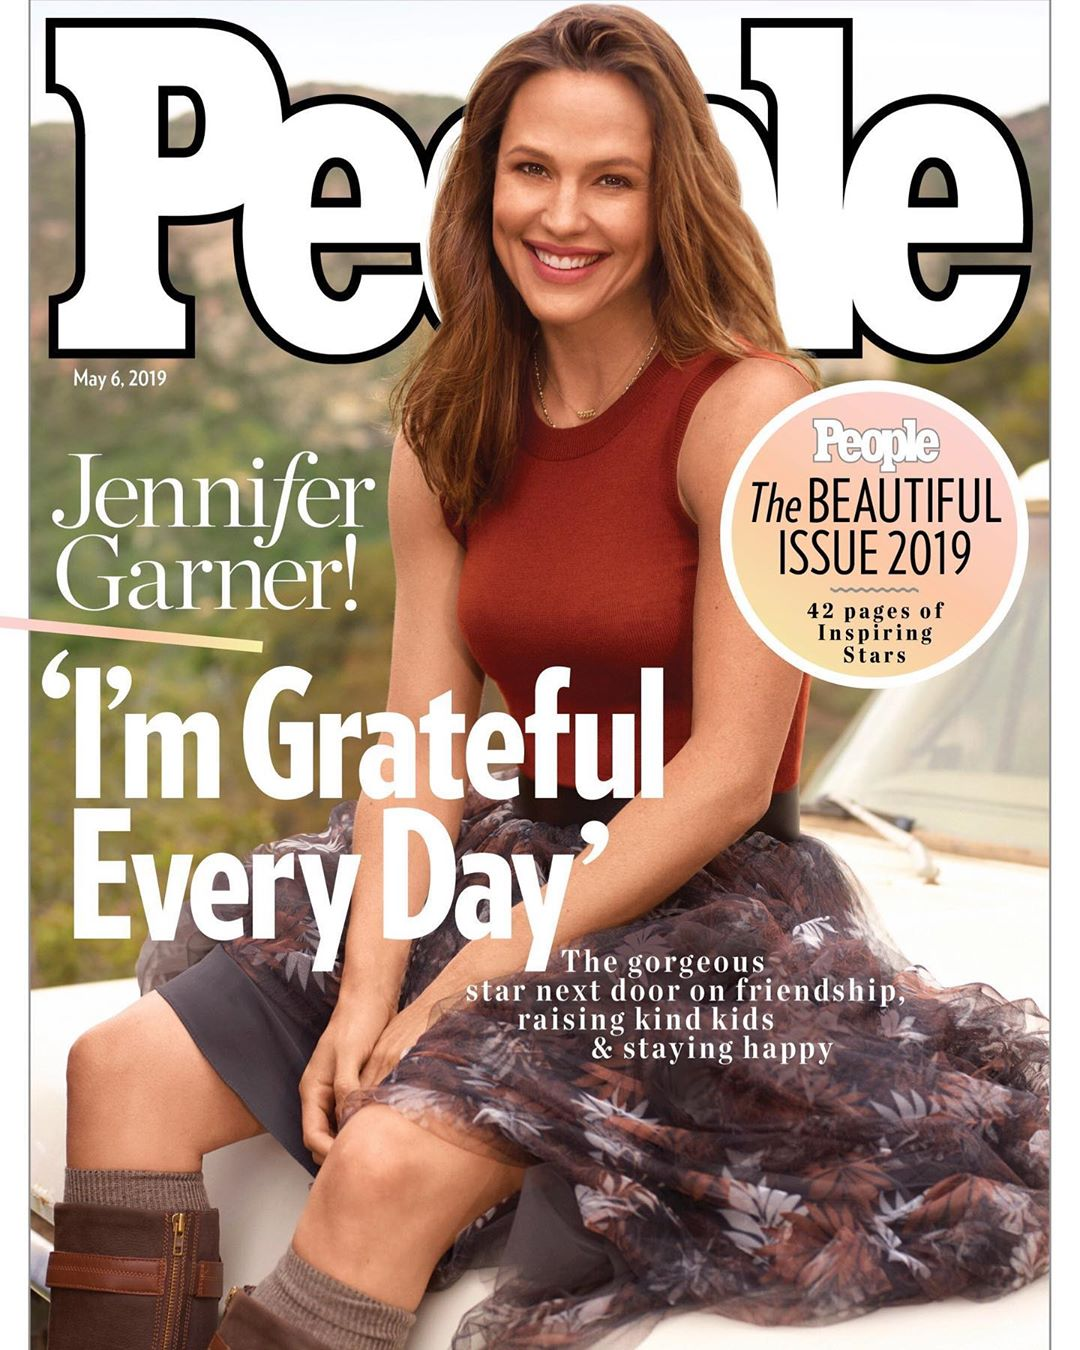 Jennifer Garner thinks her face on cover of Peoples Beautiful Issue is so ridiculous